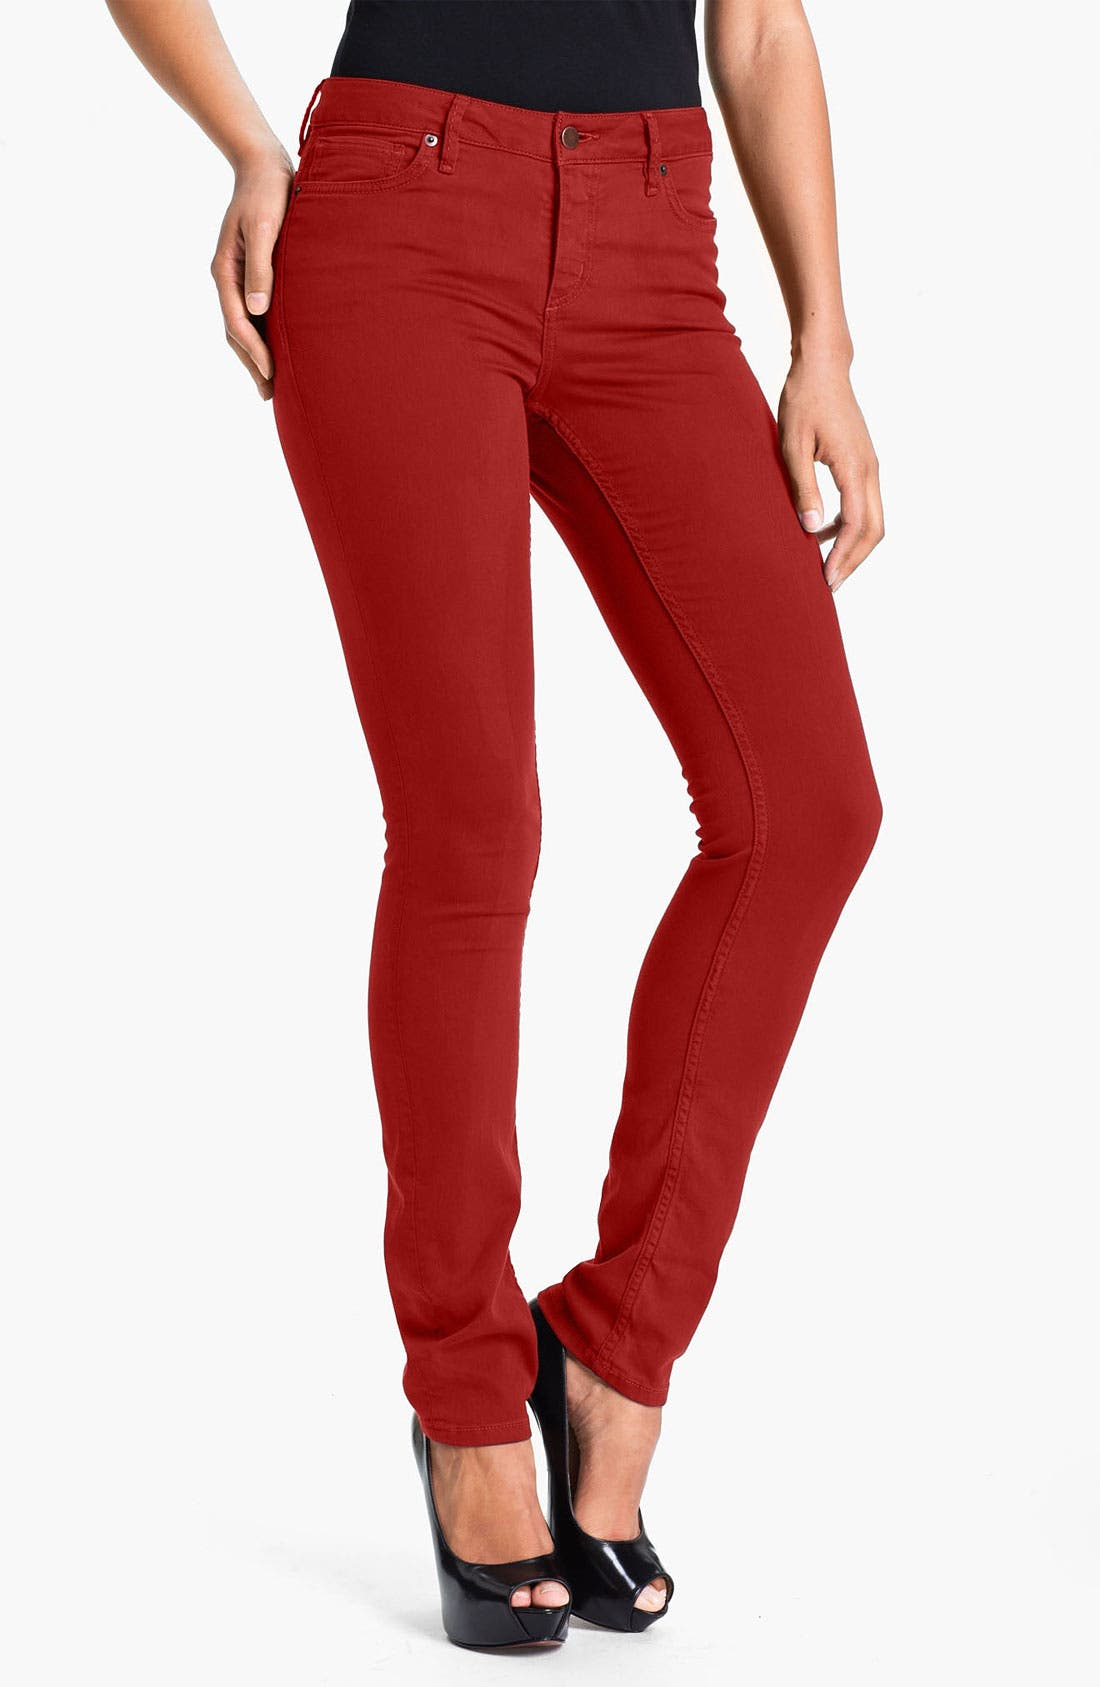 Alternate Image 1 Selected - Christopher Blue 'Sophia' Twill Skinny Jeans